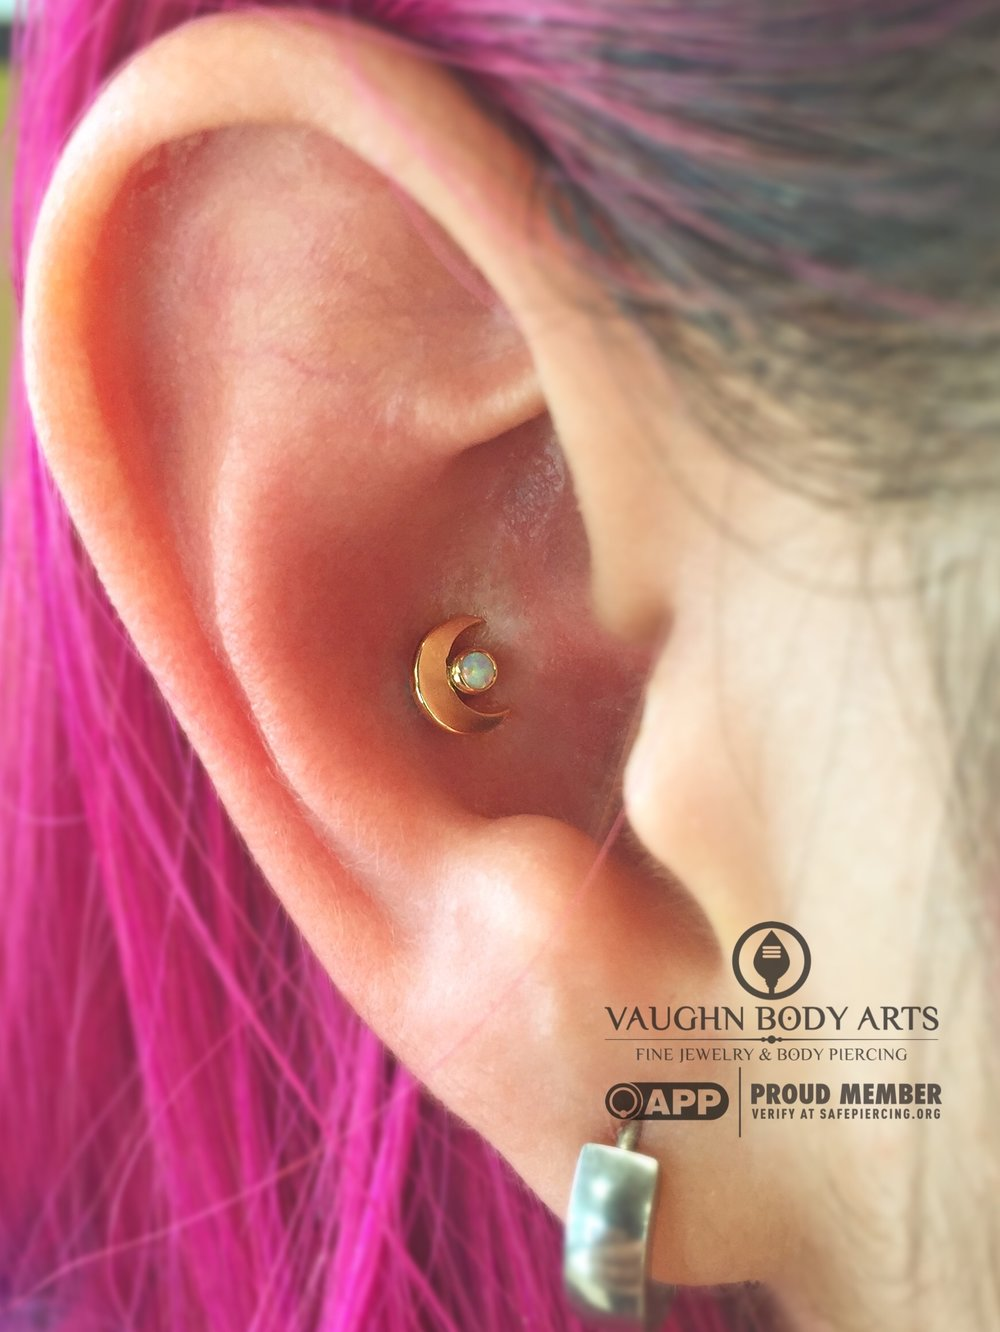 Conch piercing with an 18k yellow gold and opal crescent moon from Anatometal.